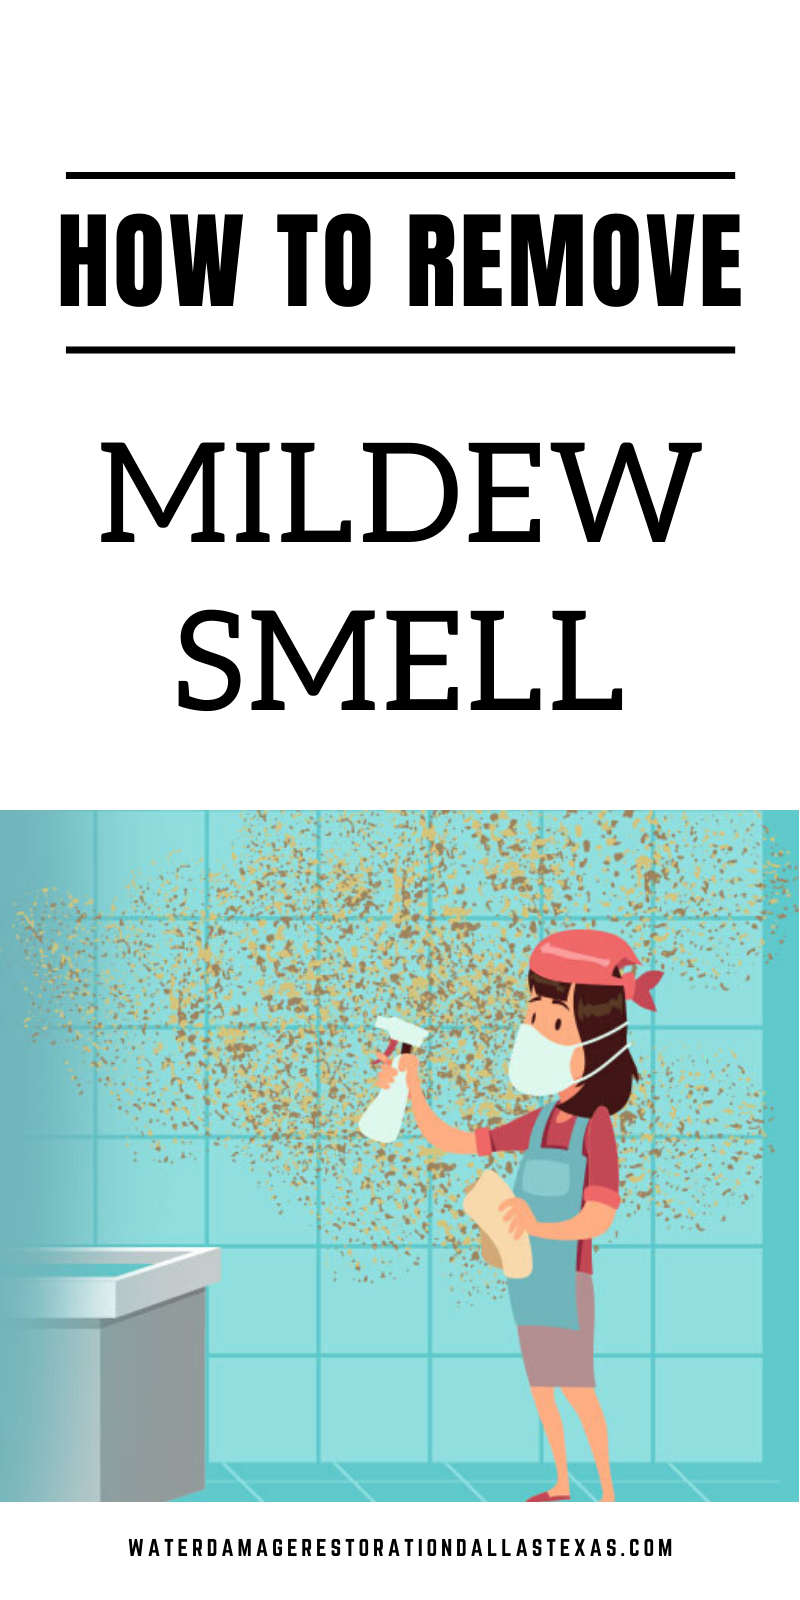 How To Remove Mildew Smell Mildew Smell Mildew How To Remove